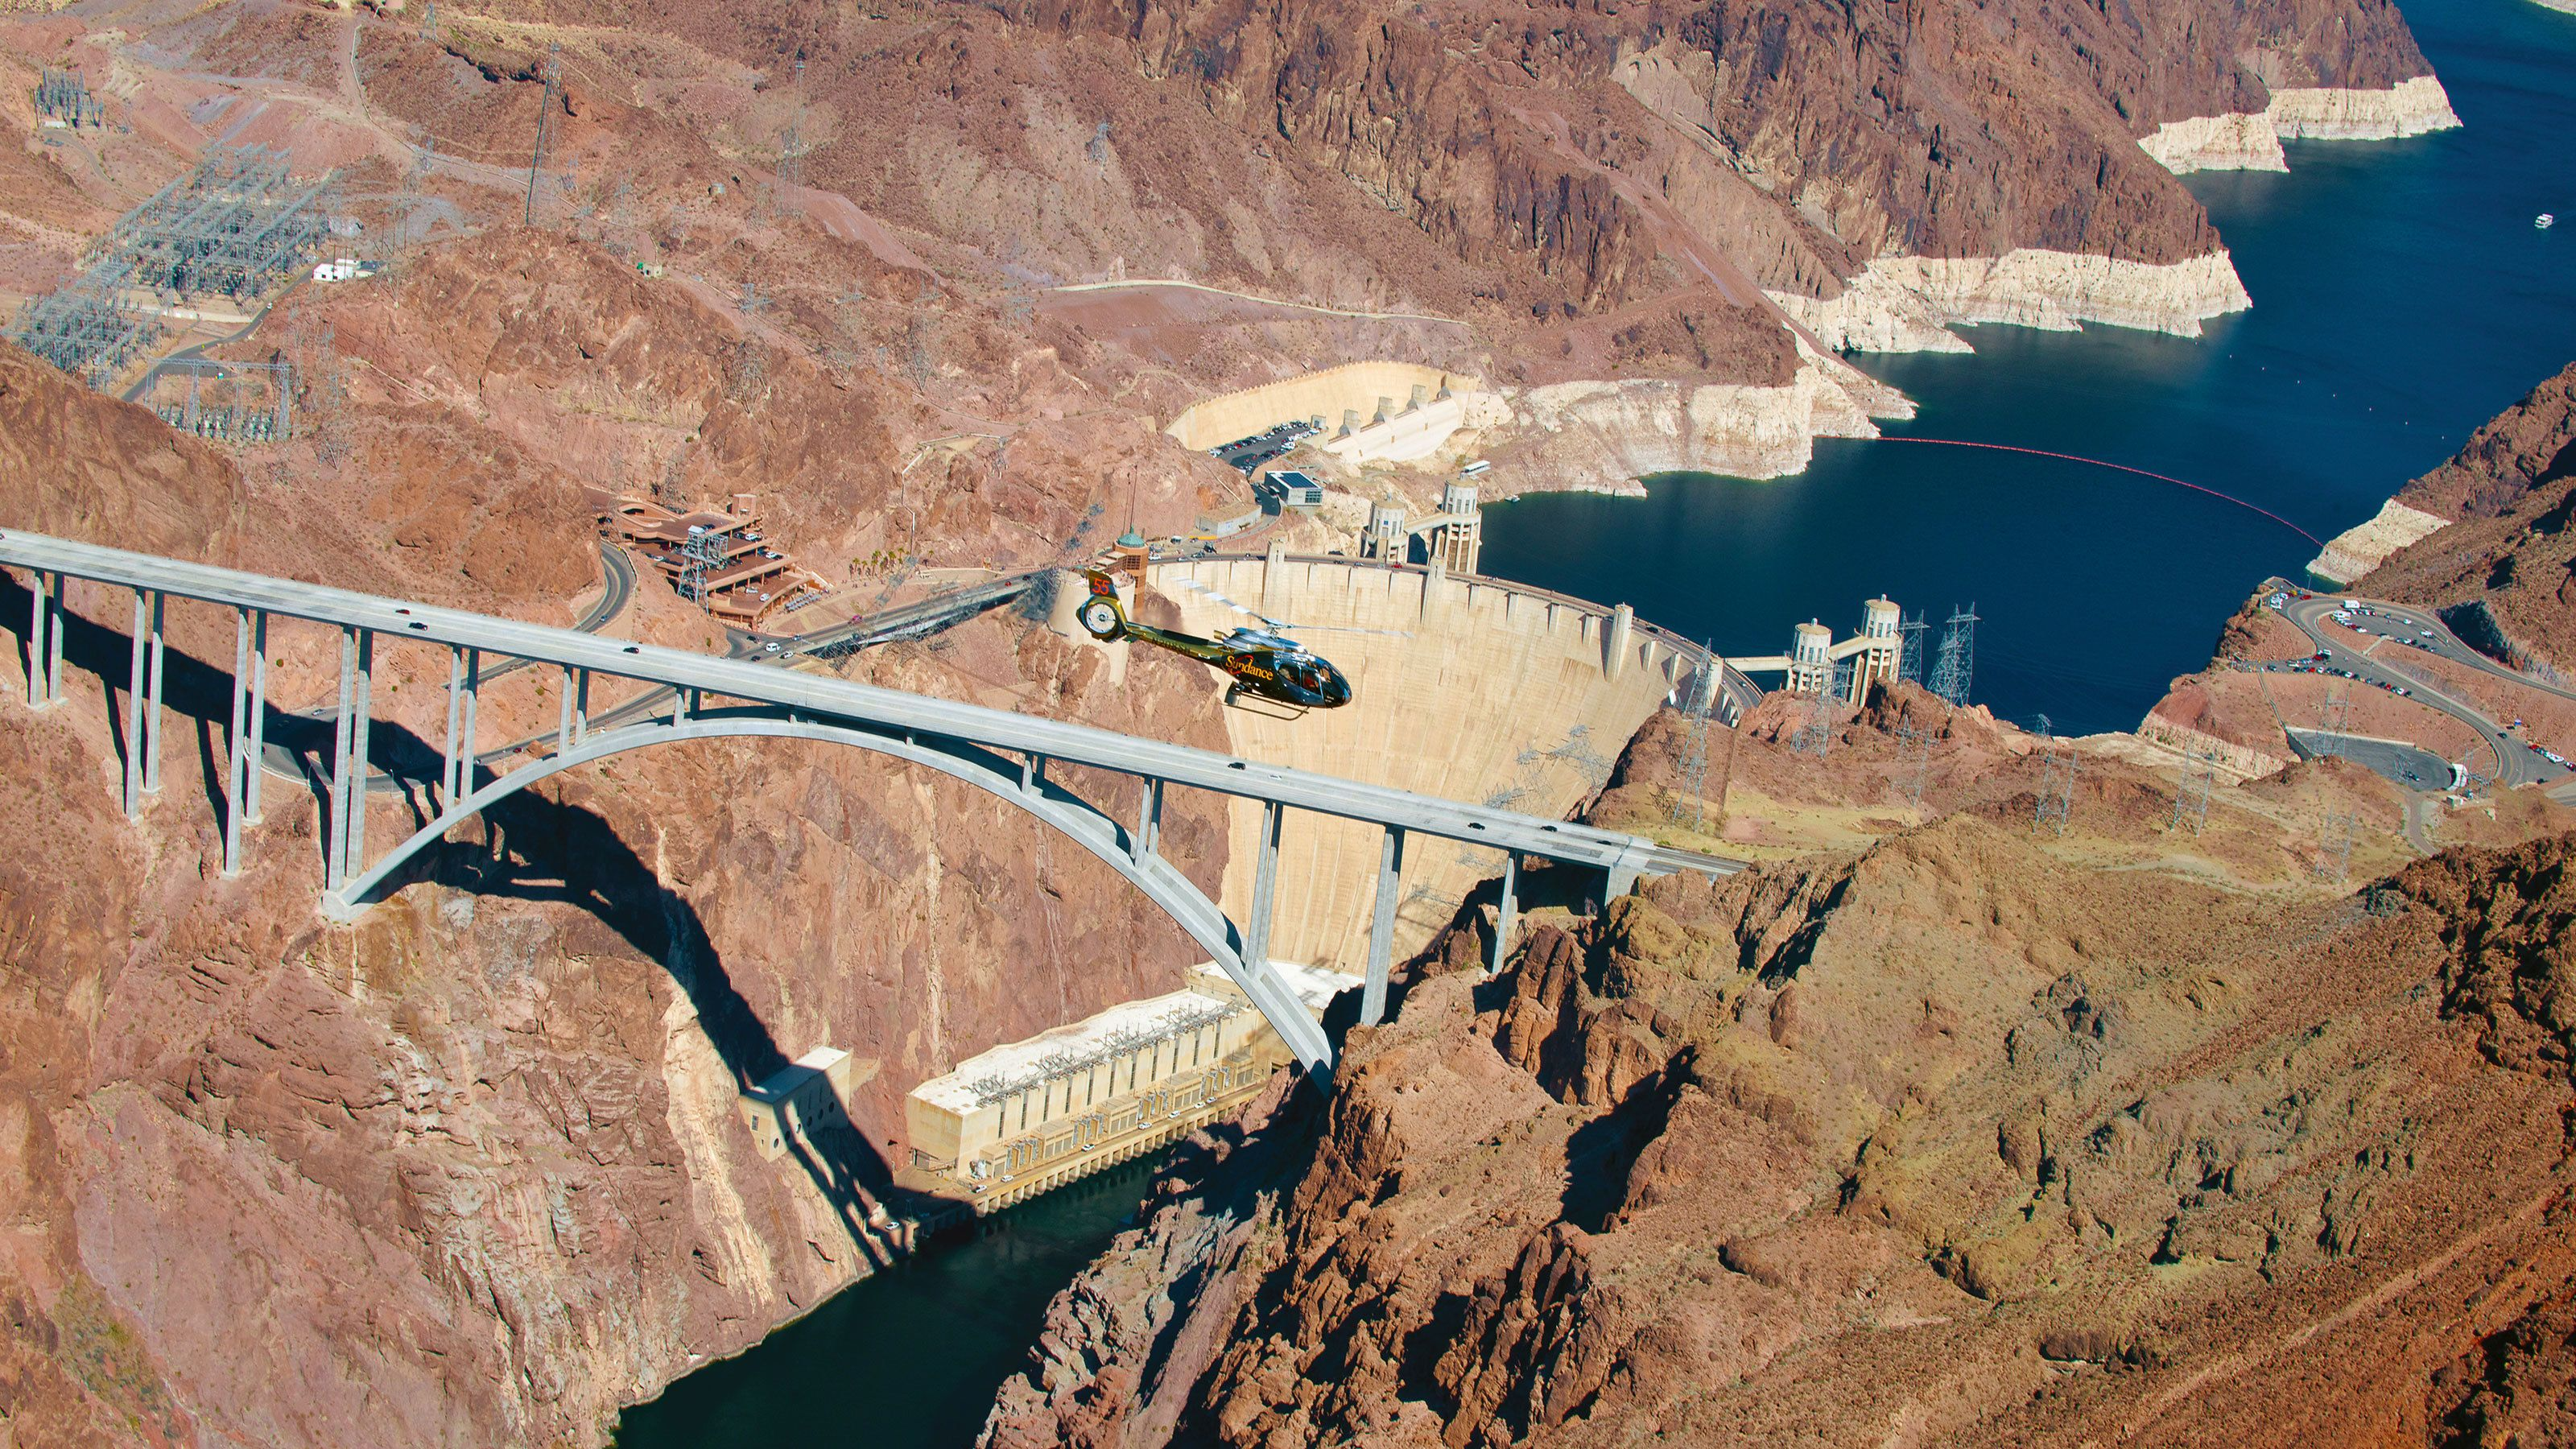 Helicopter flying above Hoover Dam